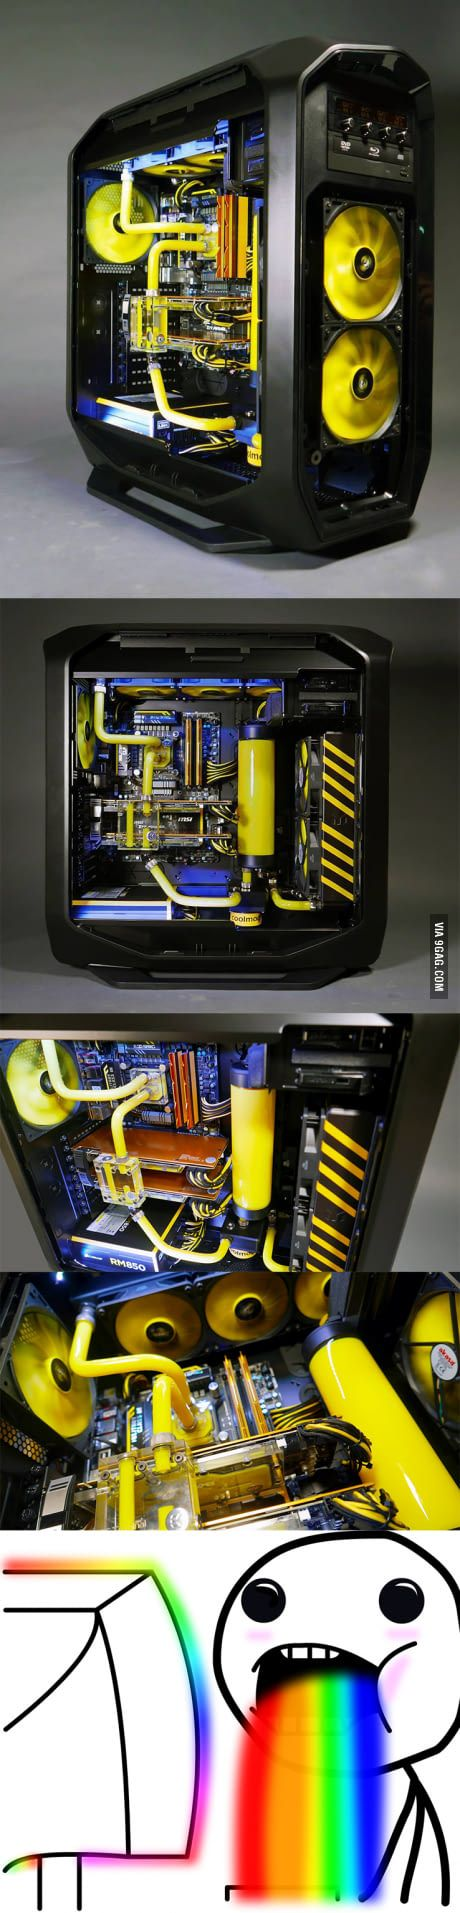 corsair just posted these pictures of their pc build